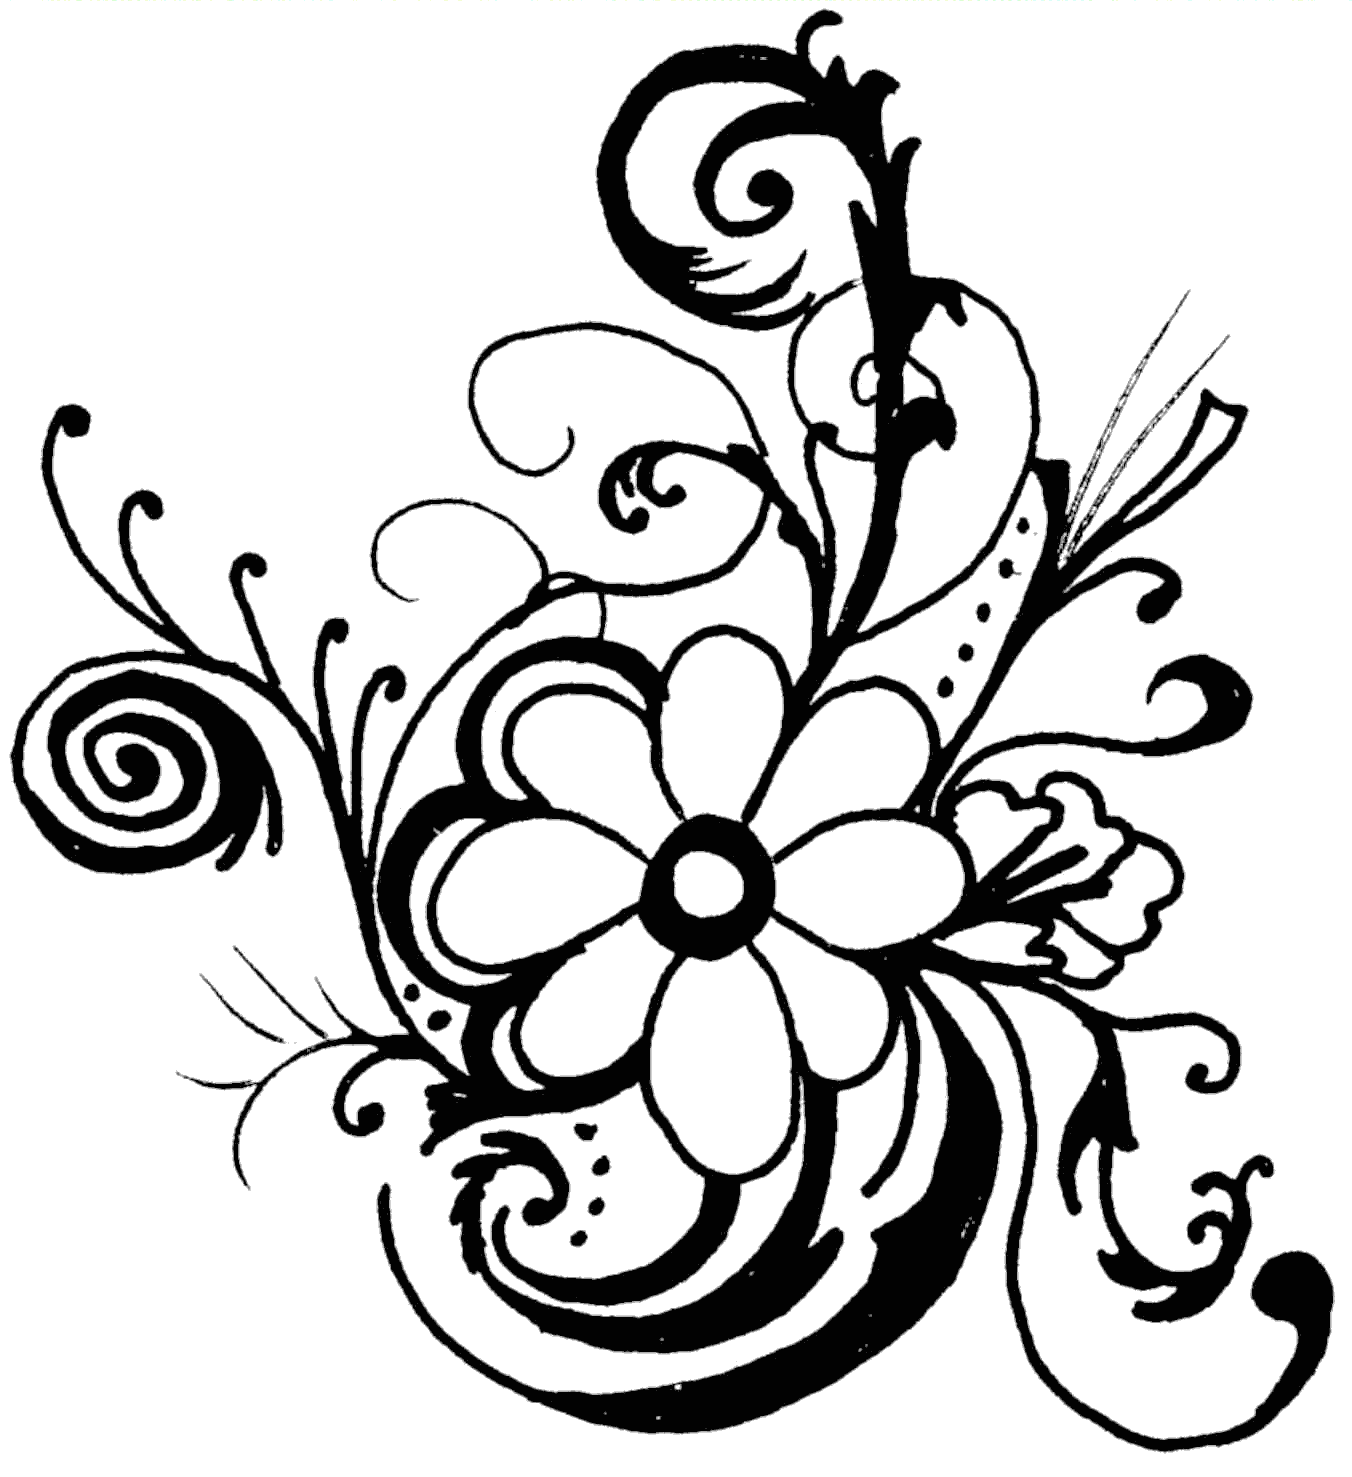 Hawaii flower border clipart black and white jpg black and white library Hawaiian Flower Clip Art Borders | Clipart Panda - Free Clipart ... jpg black and white library